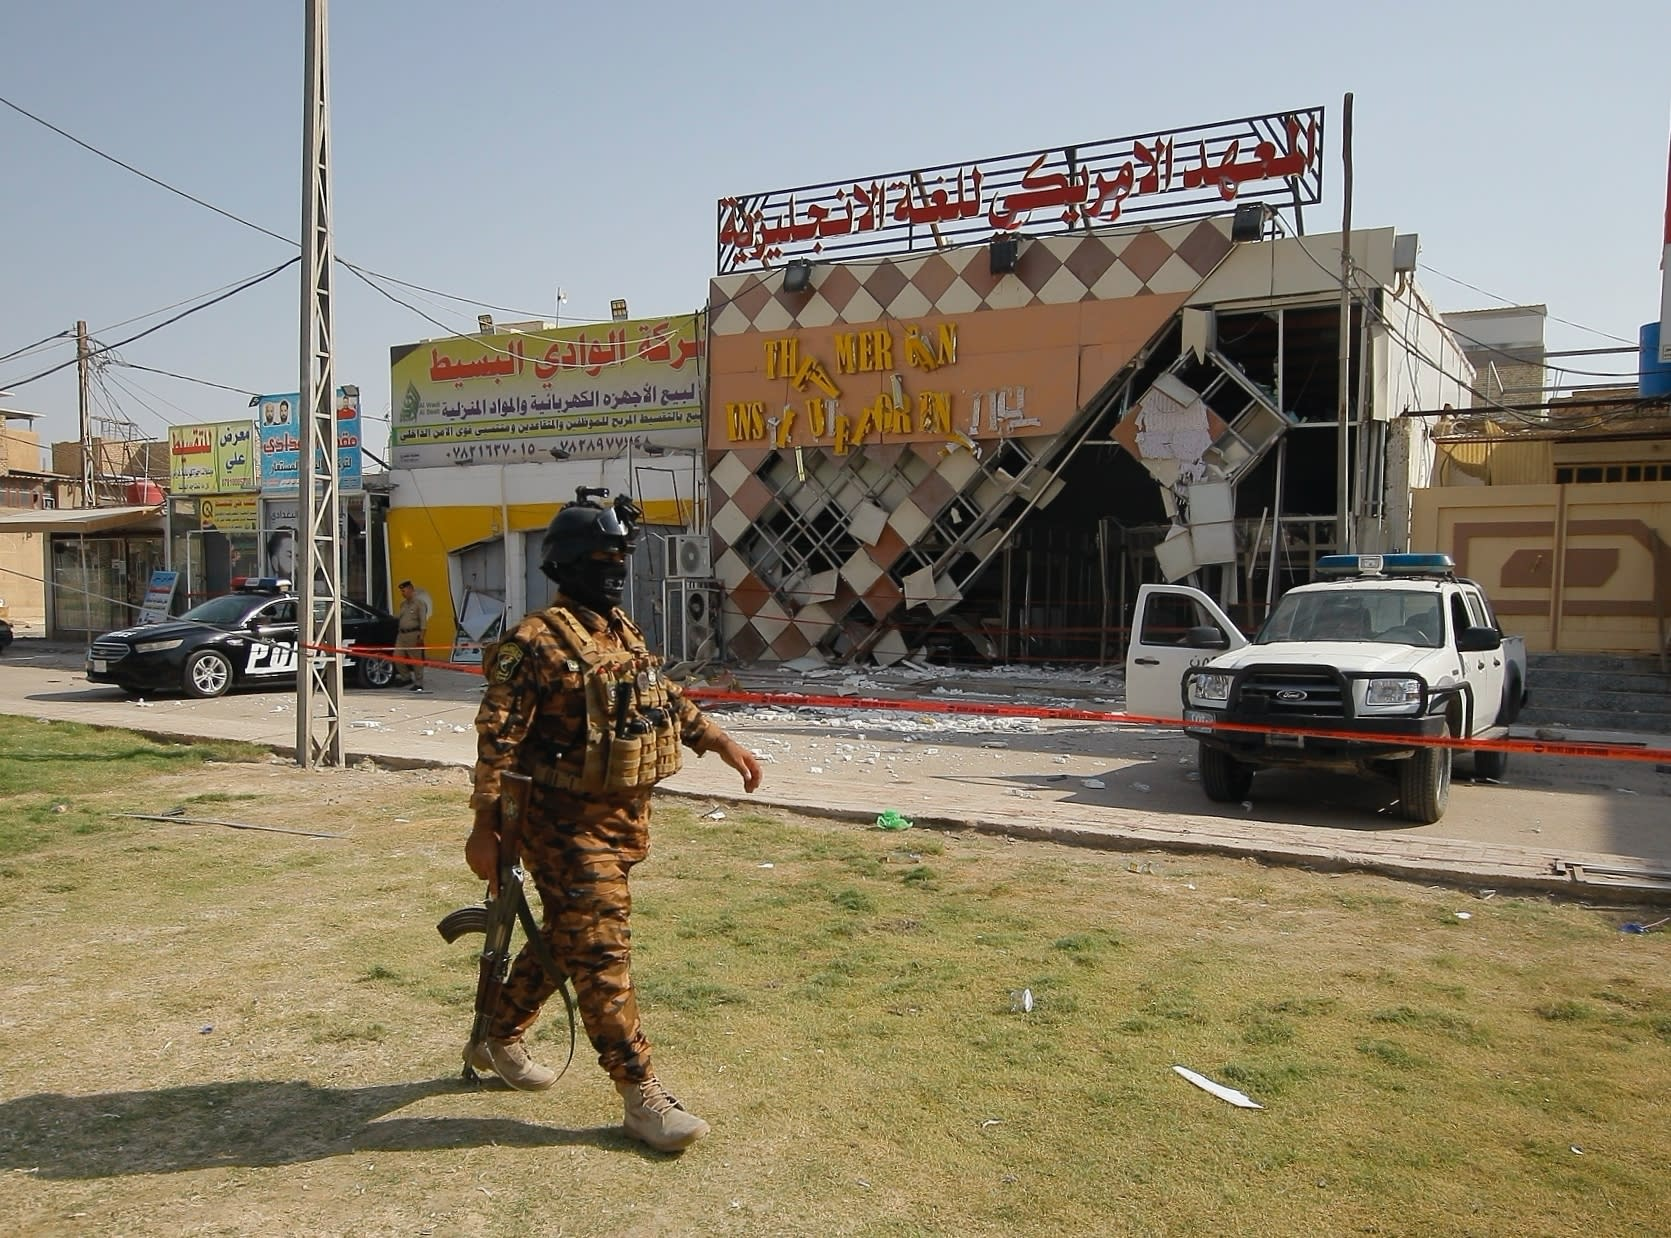 Security forces stand guard near site of an attack on the American Institute for English Learning in Najaf, Iraq, Friday, Sept. 18, 2020. An IED attack on the American Institute for English Learning in southern Iraq caused major damage without casualties in the early hours on Friday. according to Iraq security officials. (AP Photo/Anmar Khalil)